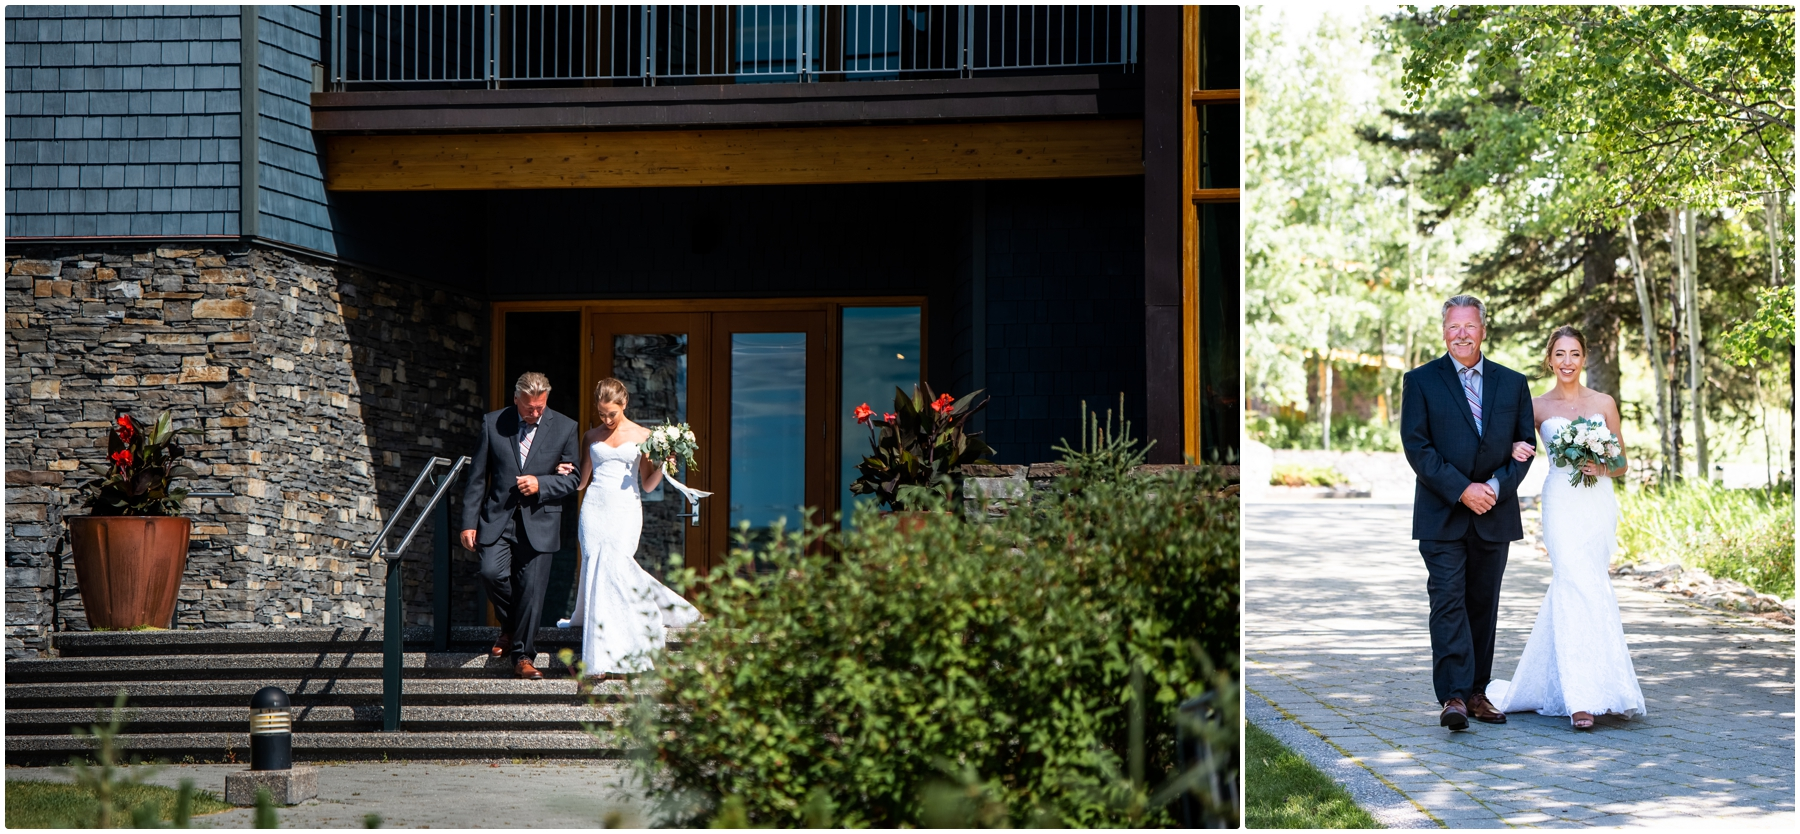 Azuridge Estate Hotel Wedding - Outdoor Wedding Ceremony Photographer